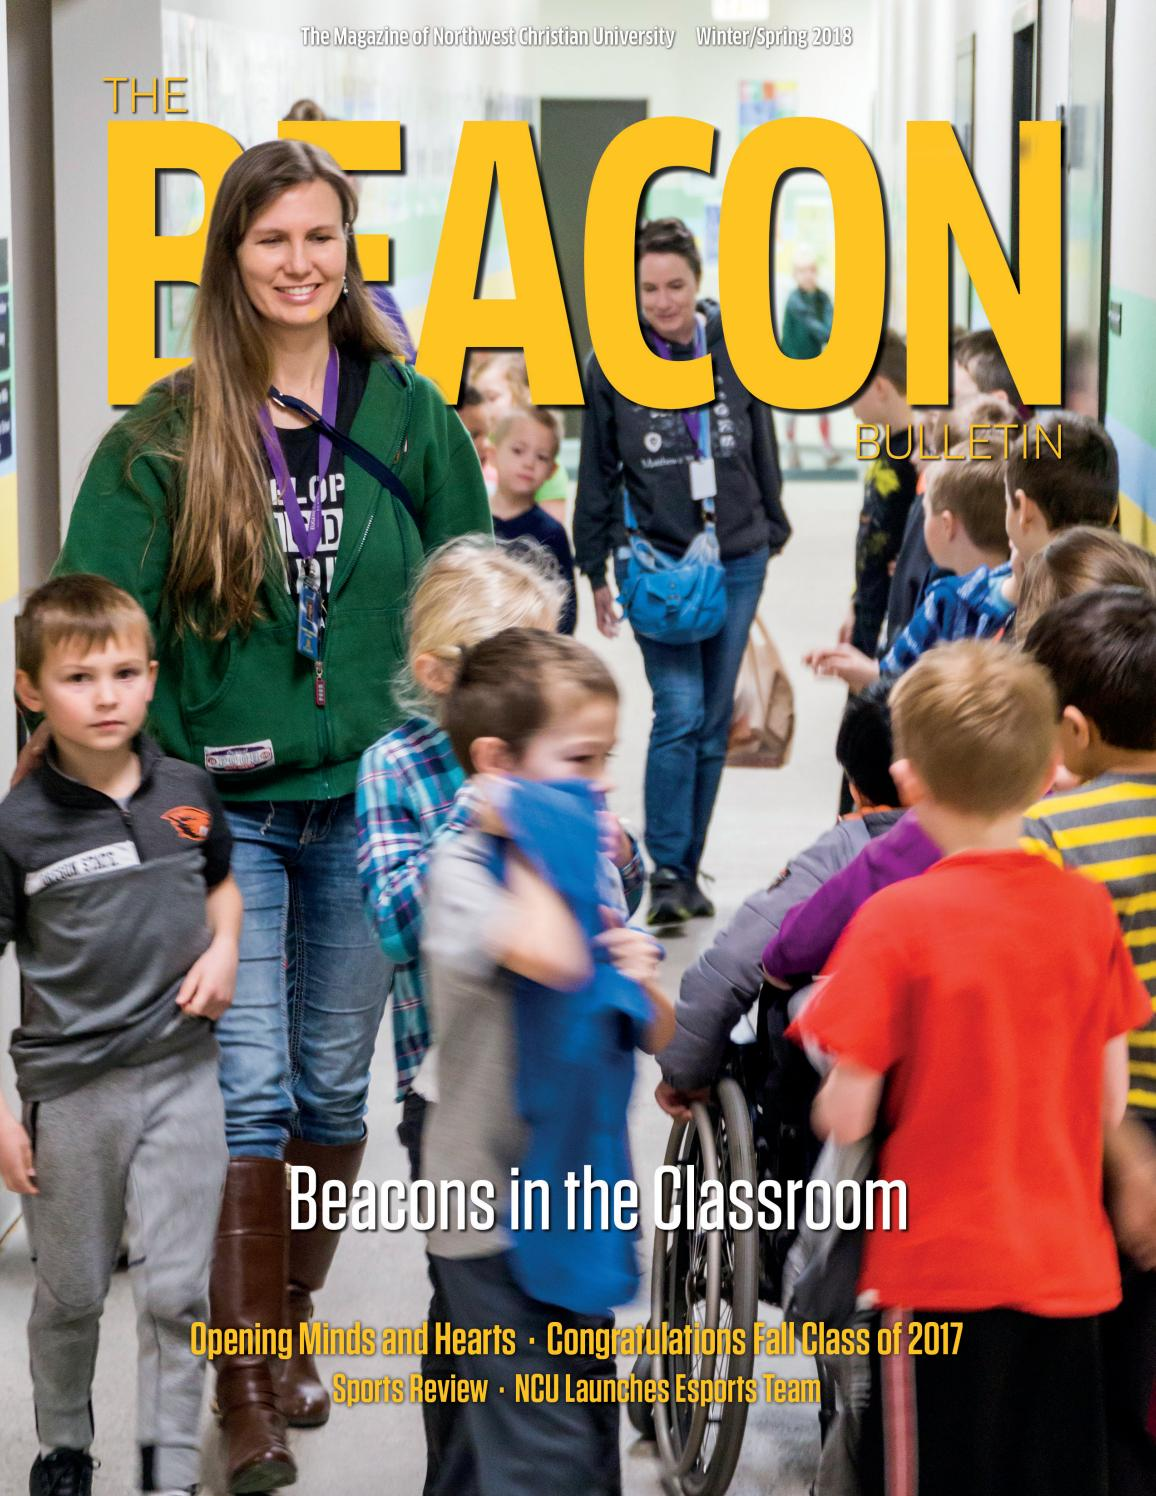 Beacon Bulletin - Spring 2018 by Northwest Christian